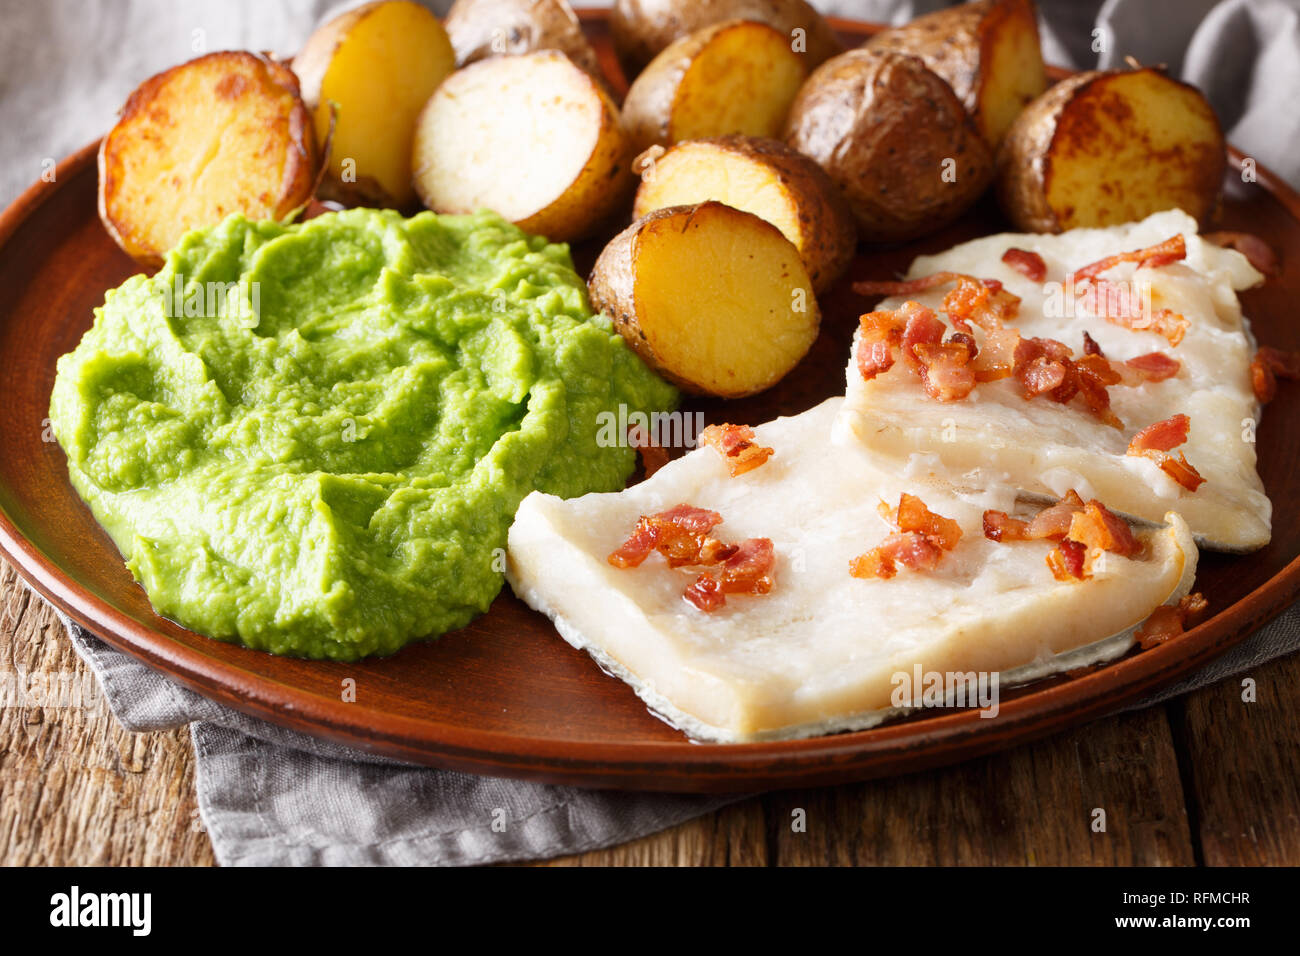 Popular Scandinavian food Lutefisk cod with pea puree, baked potatoes and bacon close-up on a plate on the table. horizontal - Stock Image